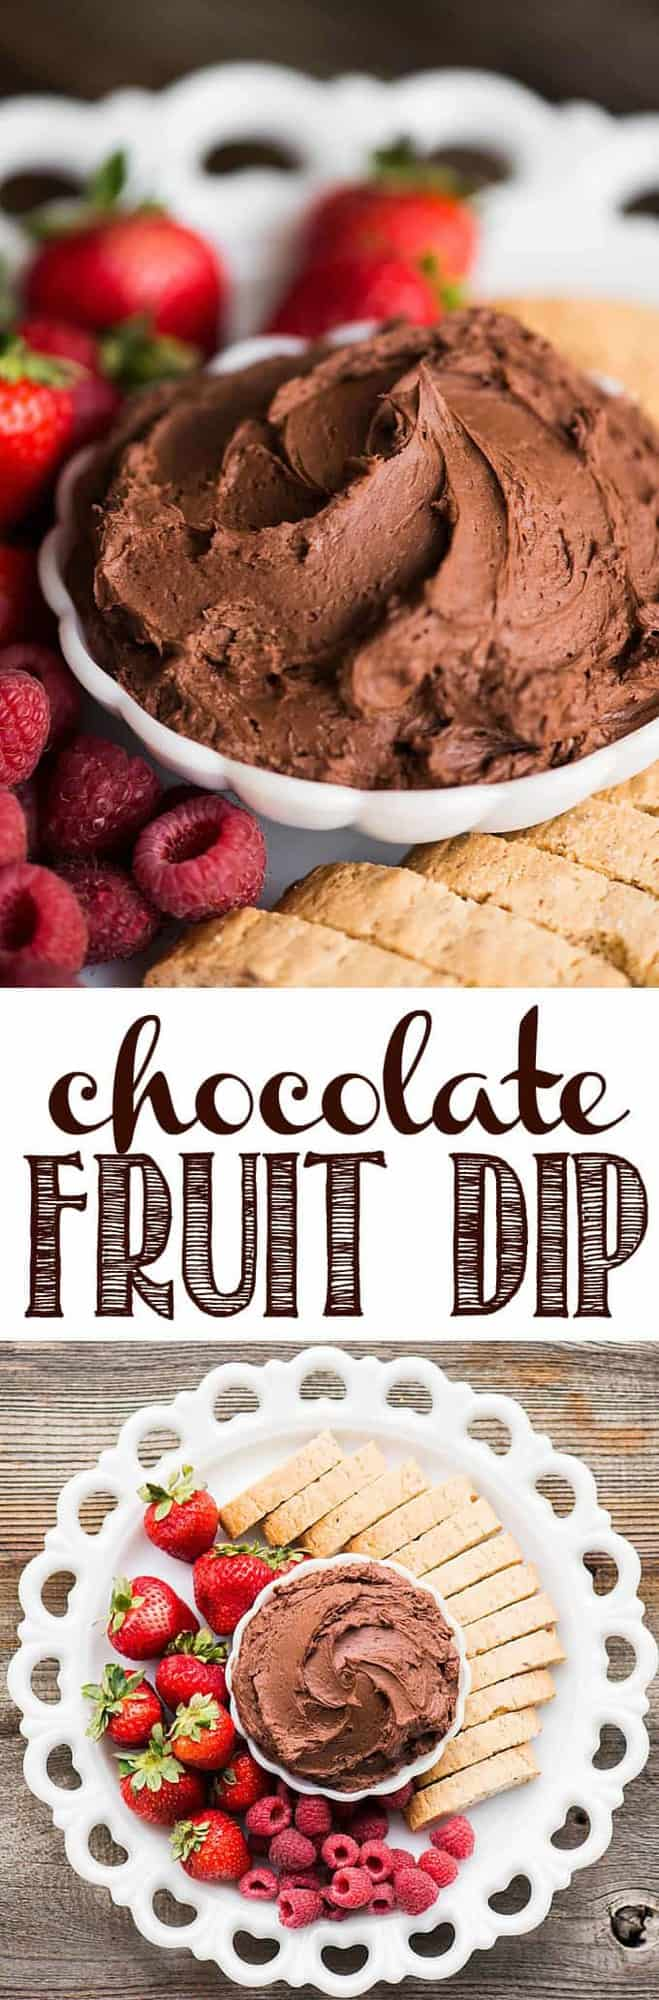 Chocolate Fruit Dip tastes like a heavenly chocolate cheesecake. It's the perfect sweet appetizer or dessert when served with cookies and fruit.